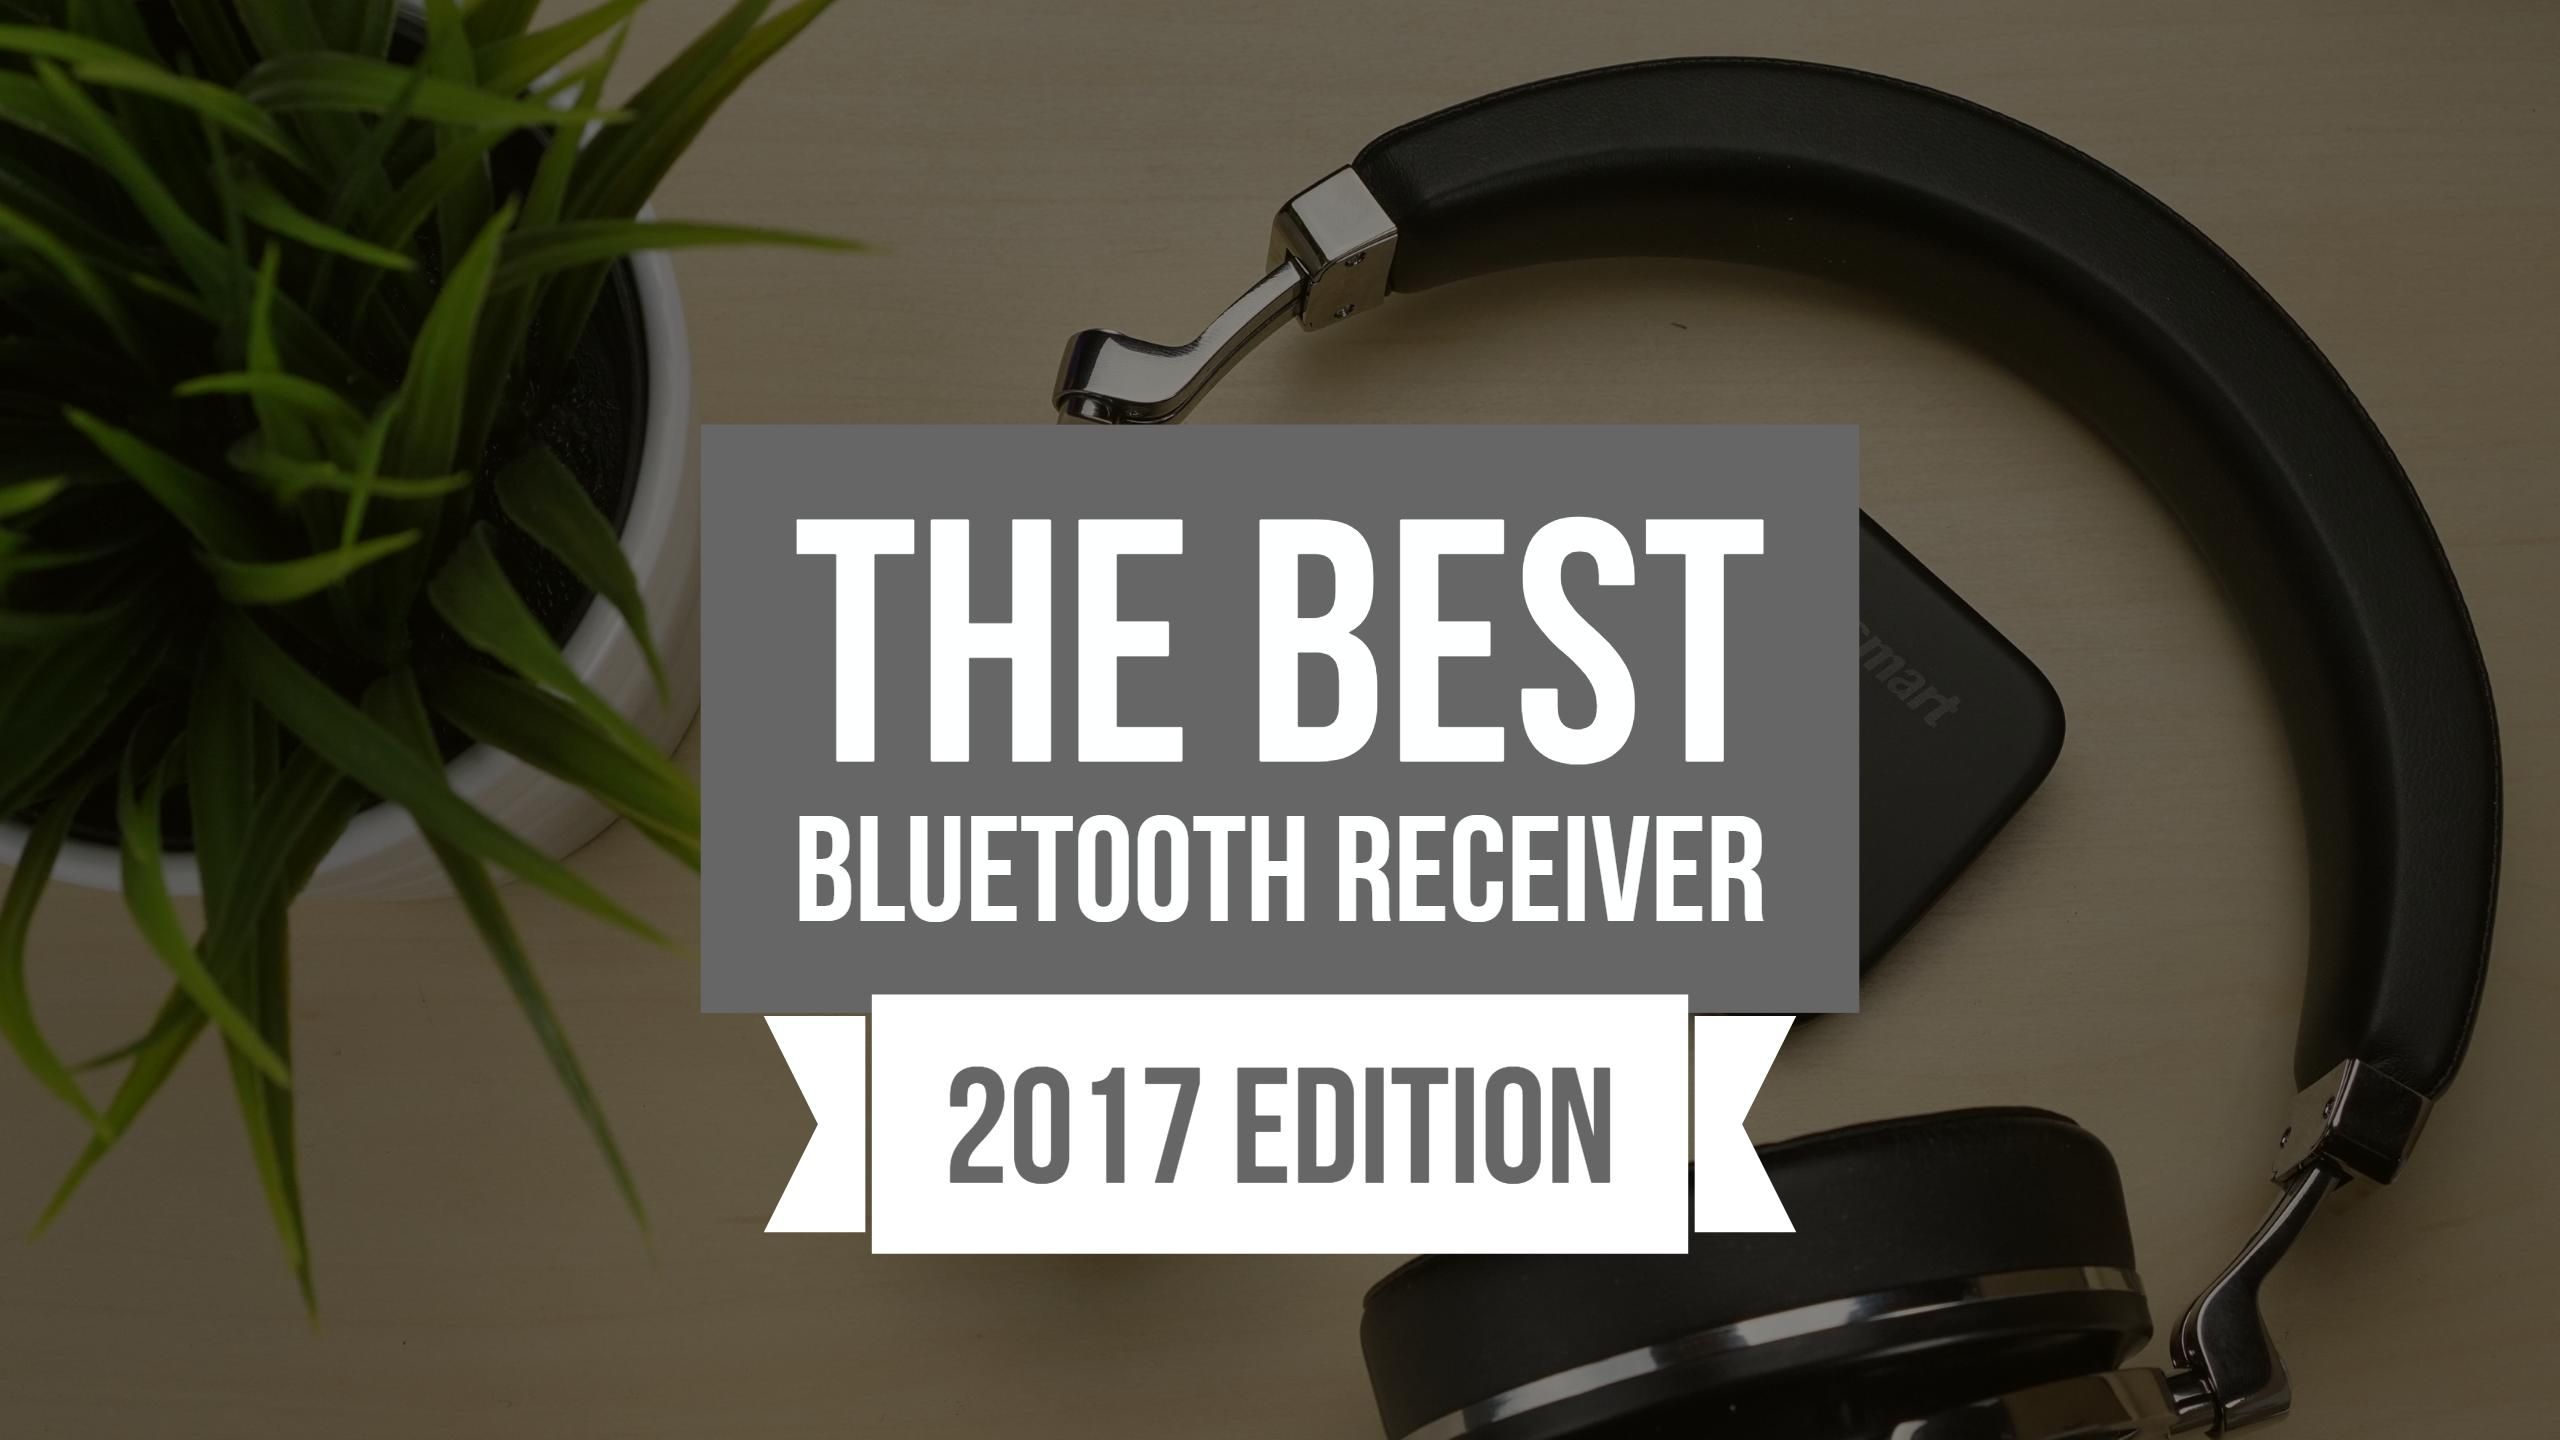 Best Bluetooth Receiver Featured Image